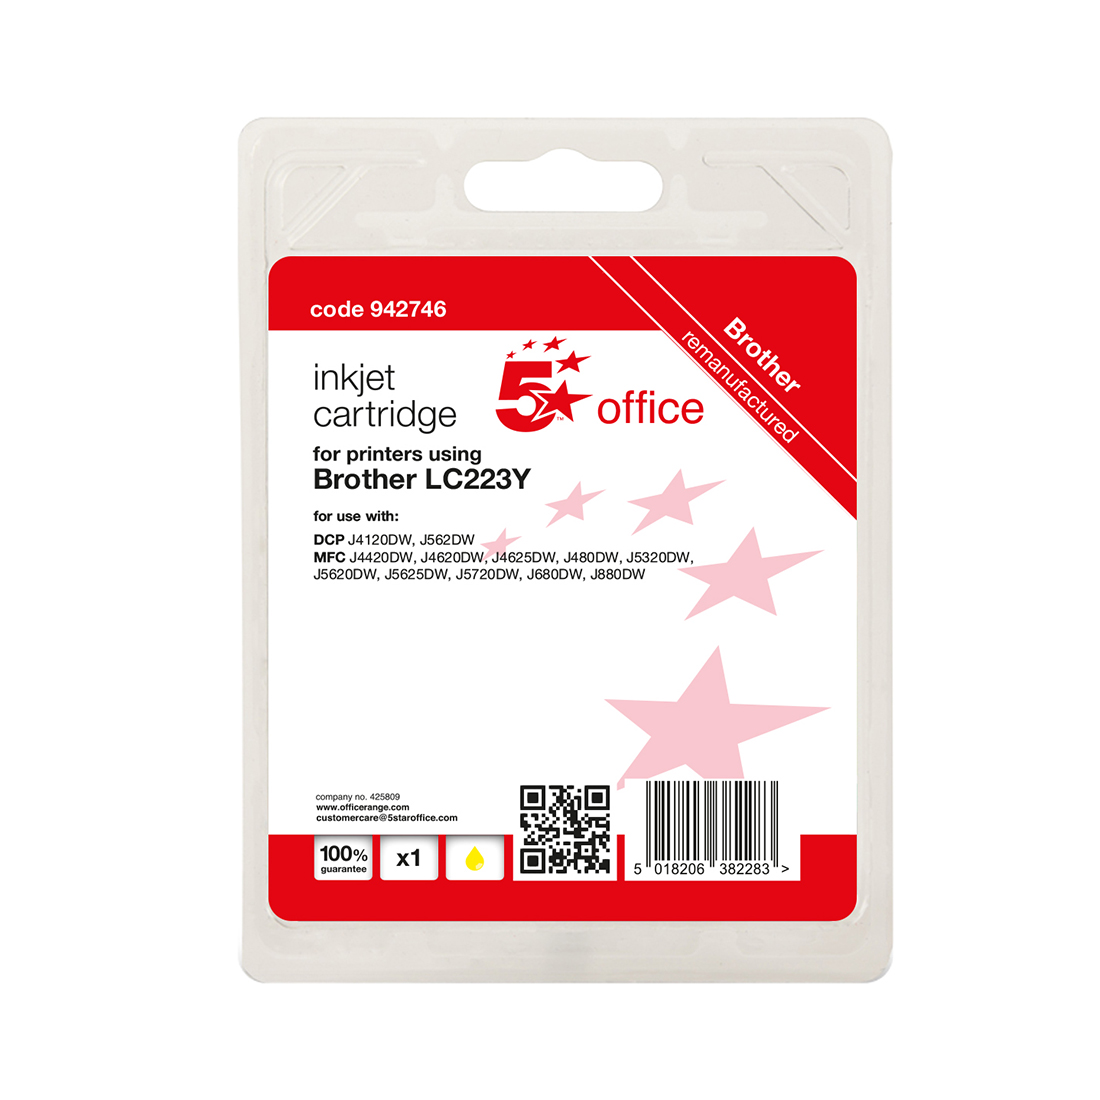 5 Star Office Remanufactured Inkjet Cartridge Page Life Yellow 550pp Brother LC223Y Alternative